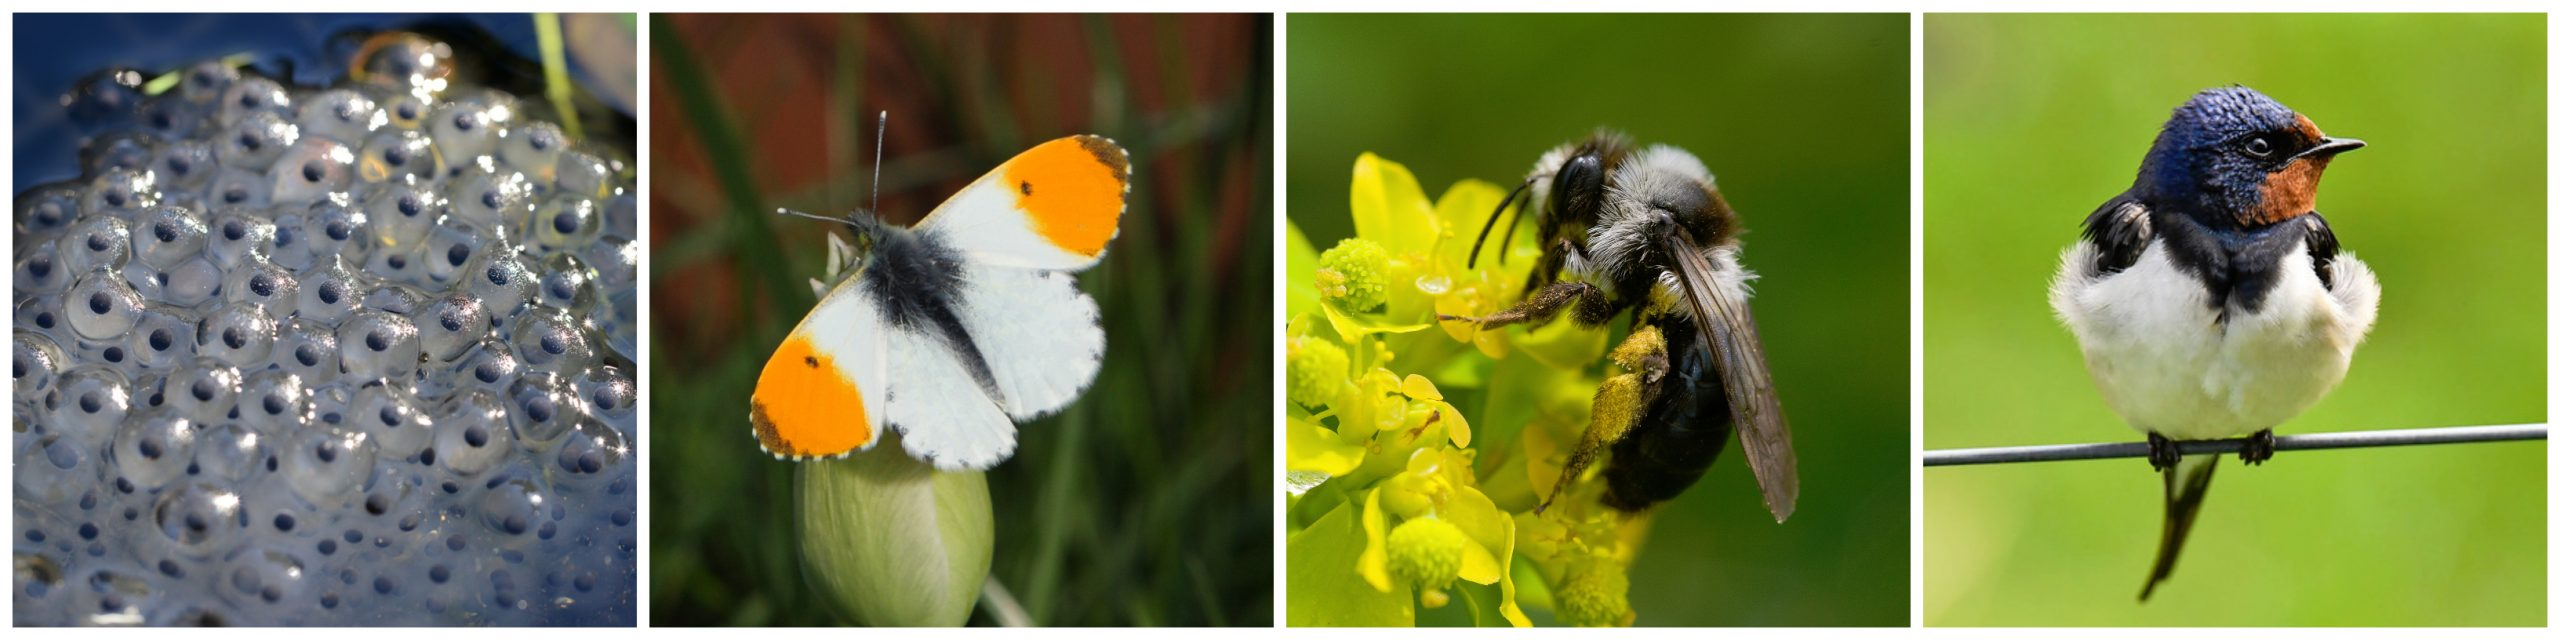 Some of the natural events and species we hope you will keep your eye out for. Source: Pollydot (frog spawn), K. Geary (Orange-tip butterfly), Will George (Grey Mining Bee) and Thomas Landgren (Barn Swallow)